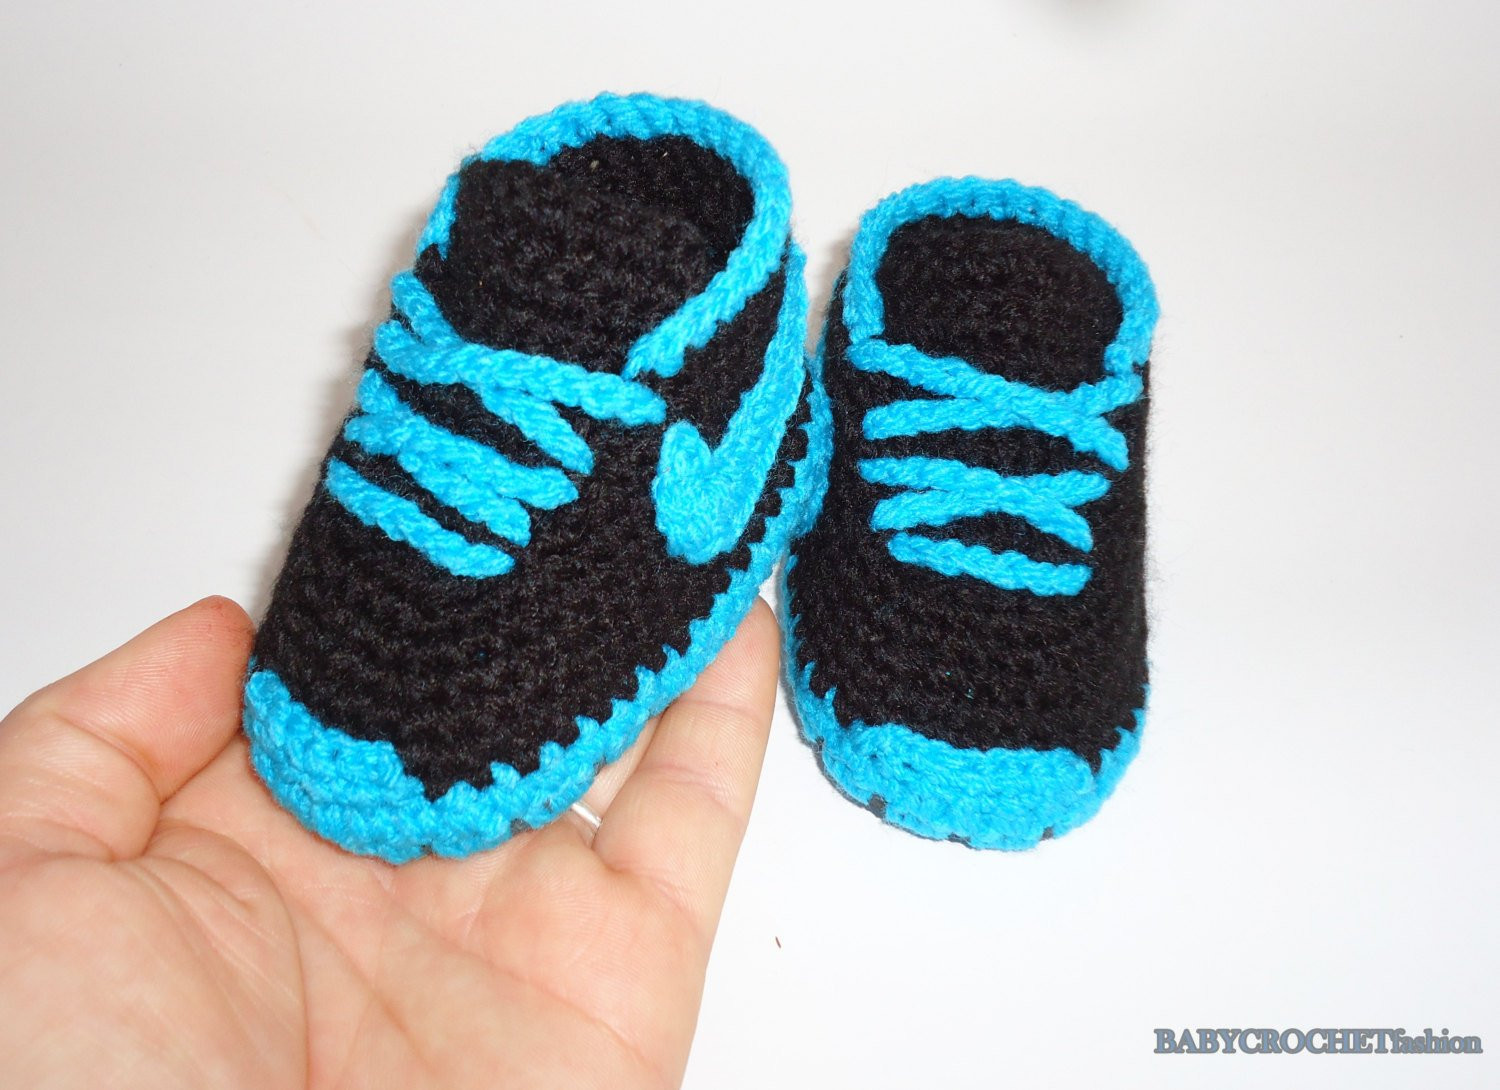 Crochet Sneakers Lovely Crochet Baby Shoes Baby Sneakers Nike Baby Shoes Crochet Of Gorgeous 50 Pics Crochet Sneakers